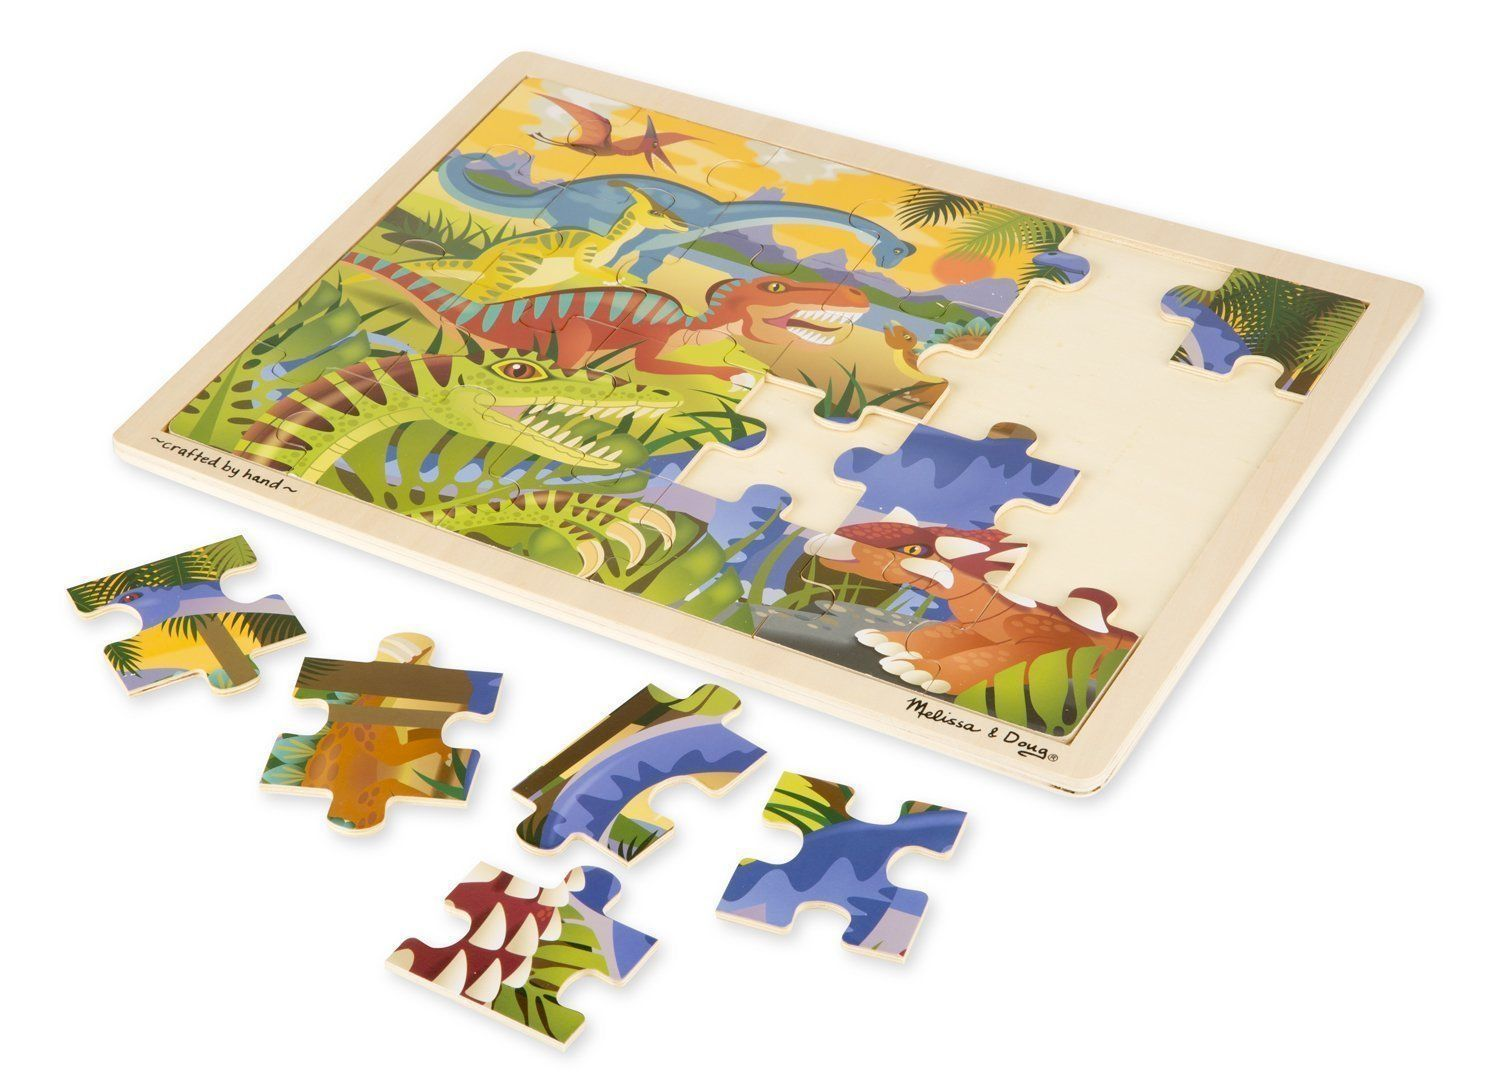 Dinosaurs 24 PC Melissa & Doug Wooden Jigsaw Puzzle